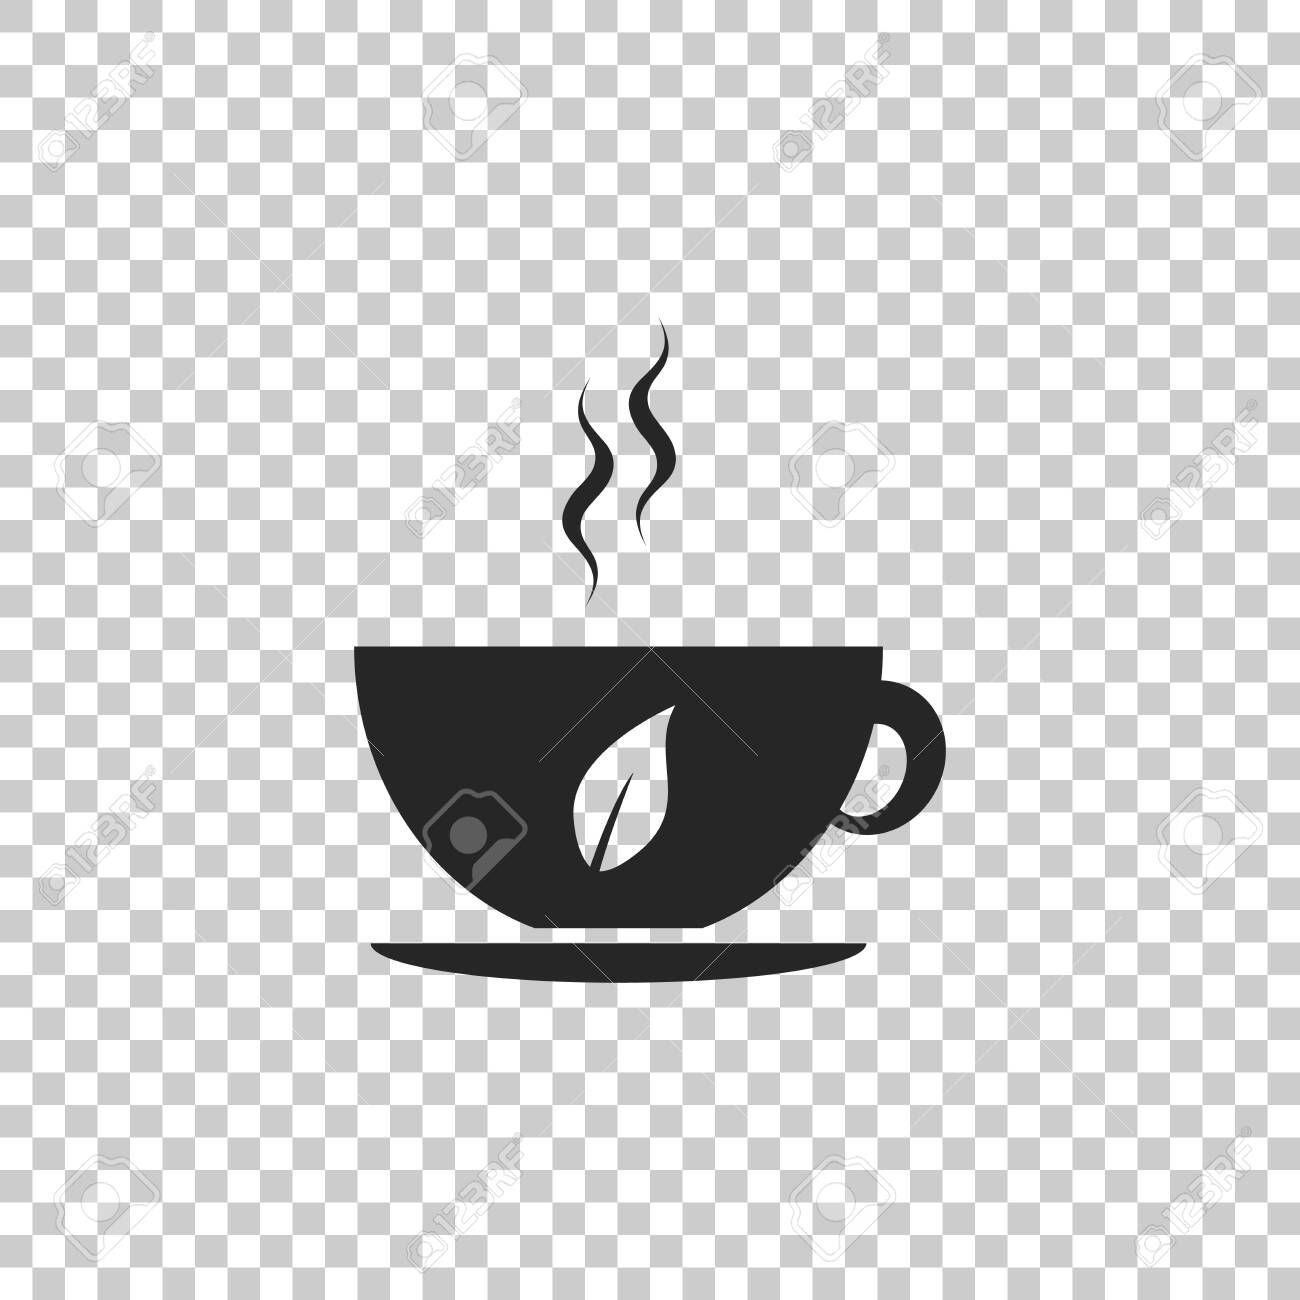 cup of tea and leaf icon isolated on transparent background flat design vector illustration aff icon cute designs to draw designs to draw cute designs pinterest